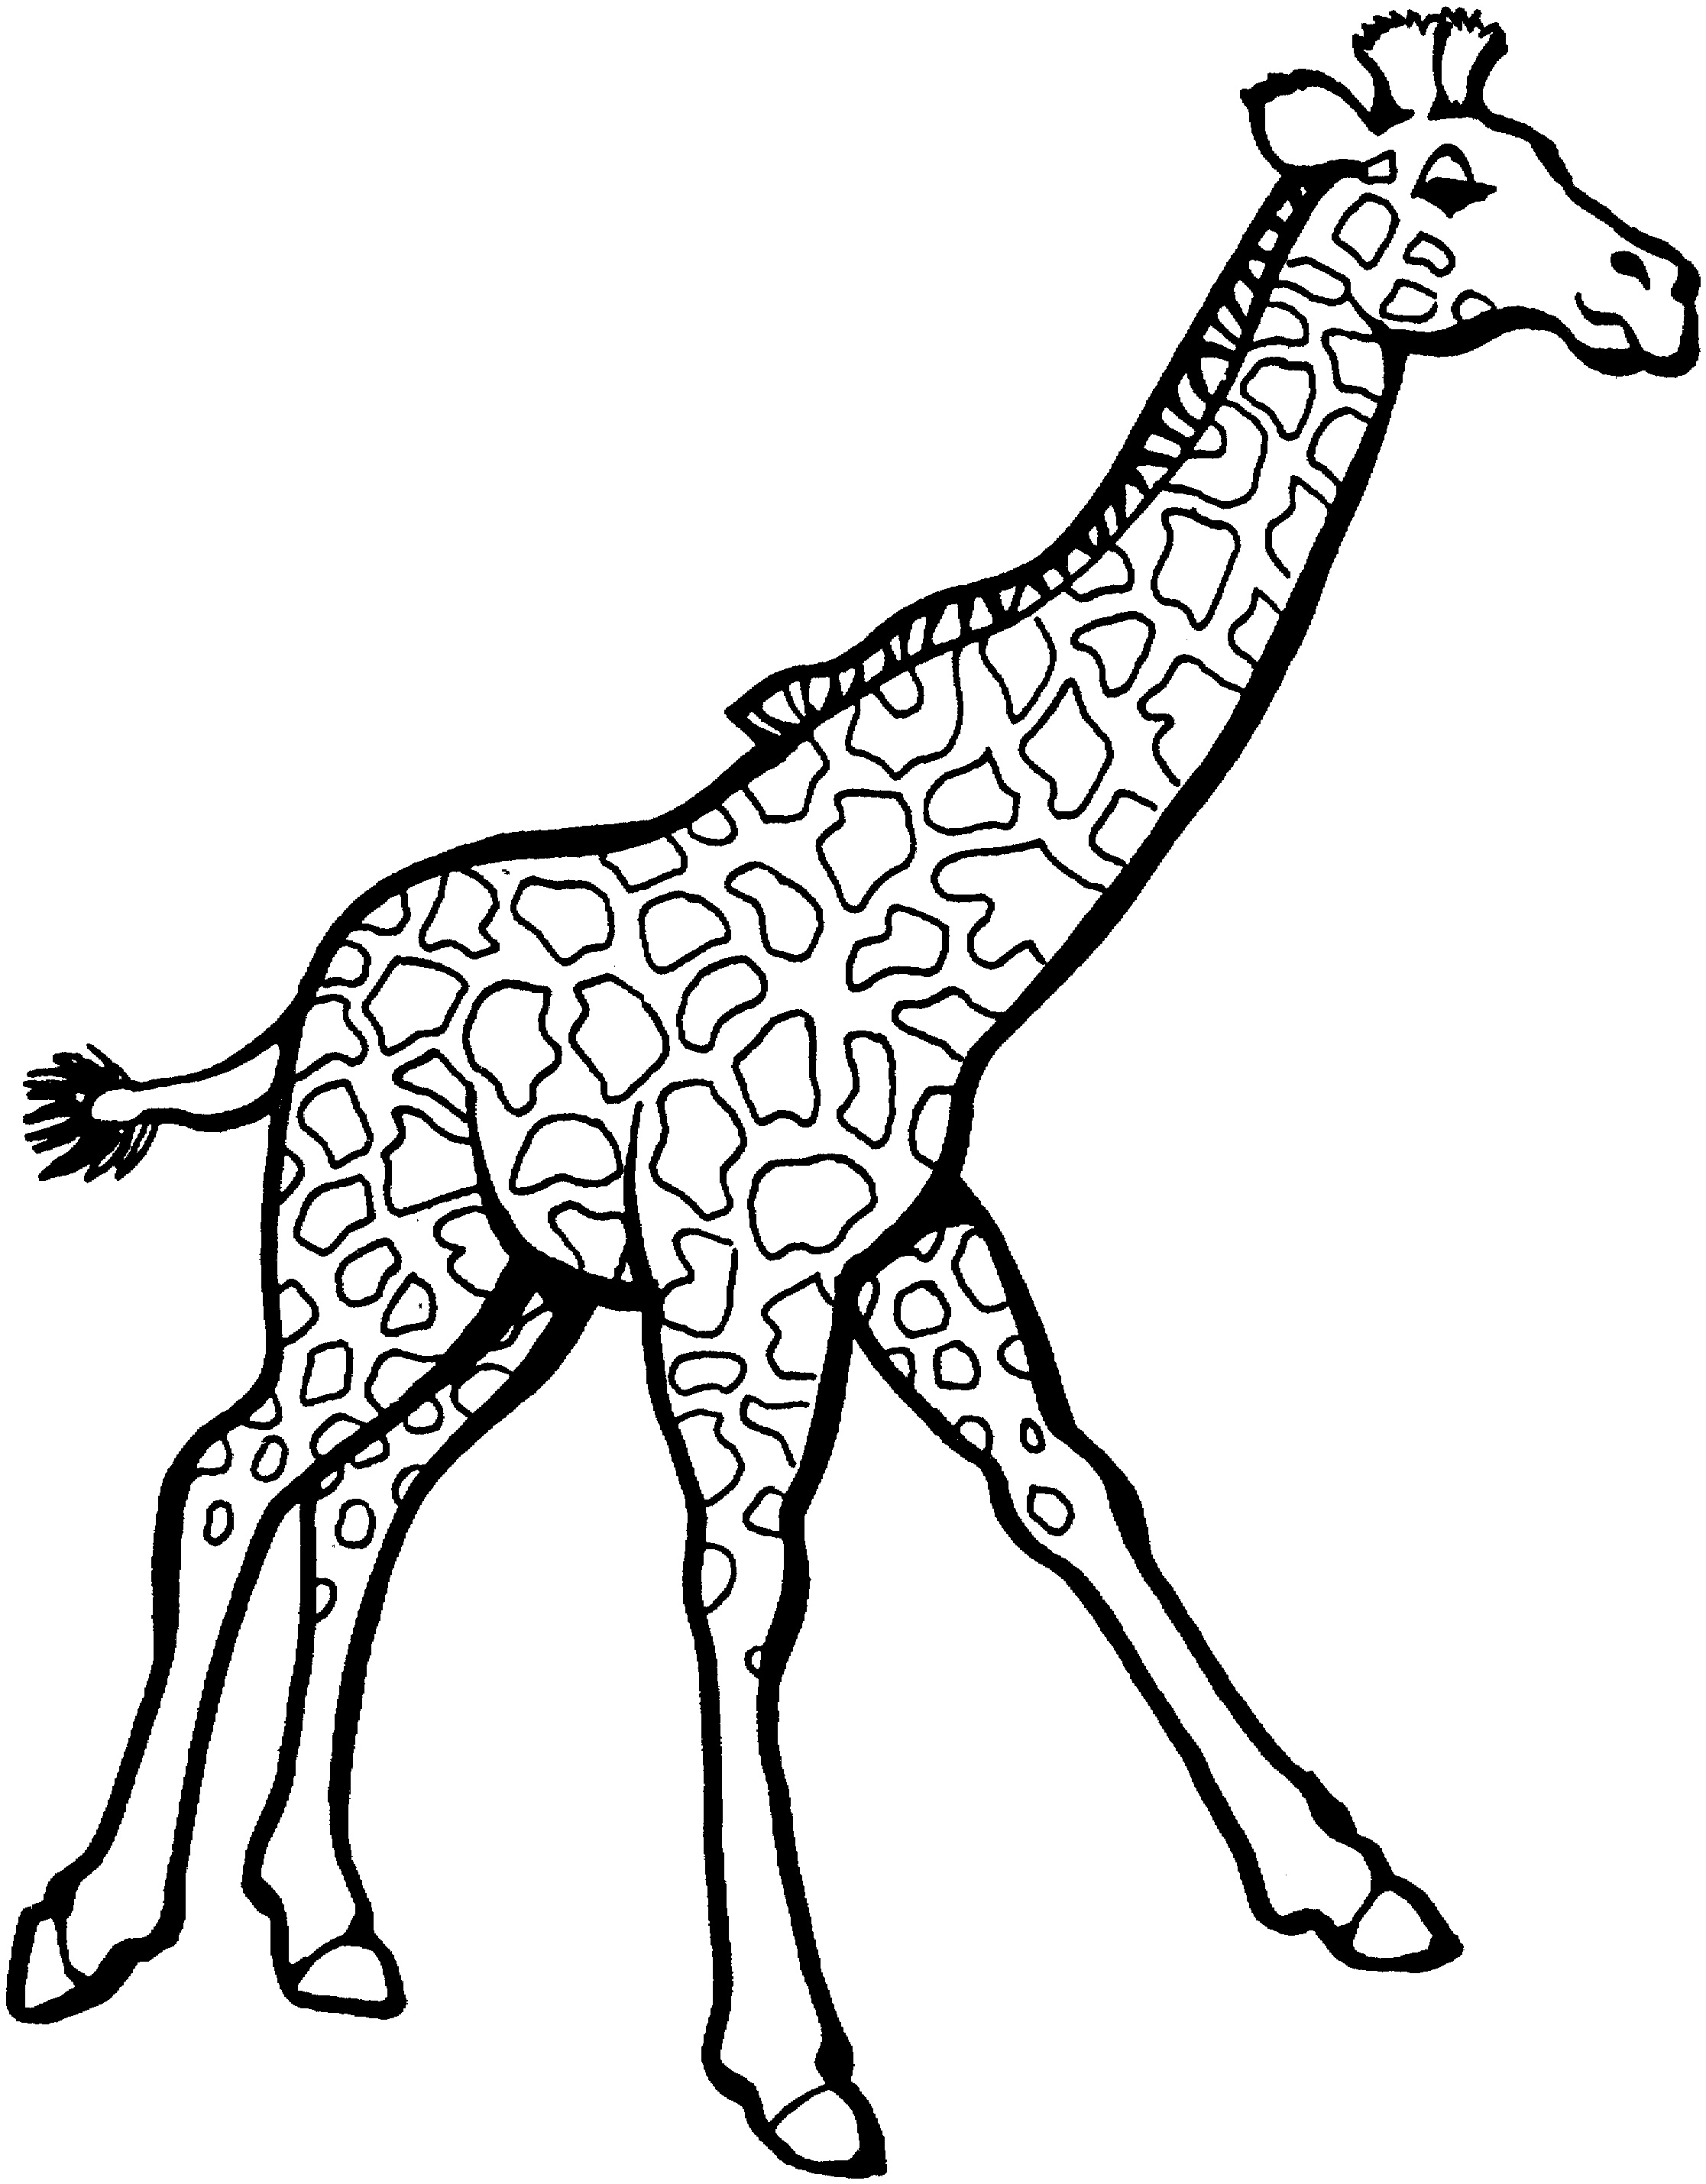 Giraffe Drawing Outline at GetDrawings.com | Free for ...